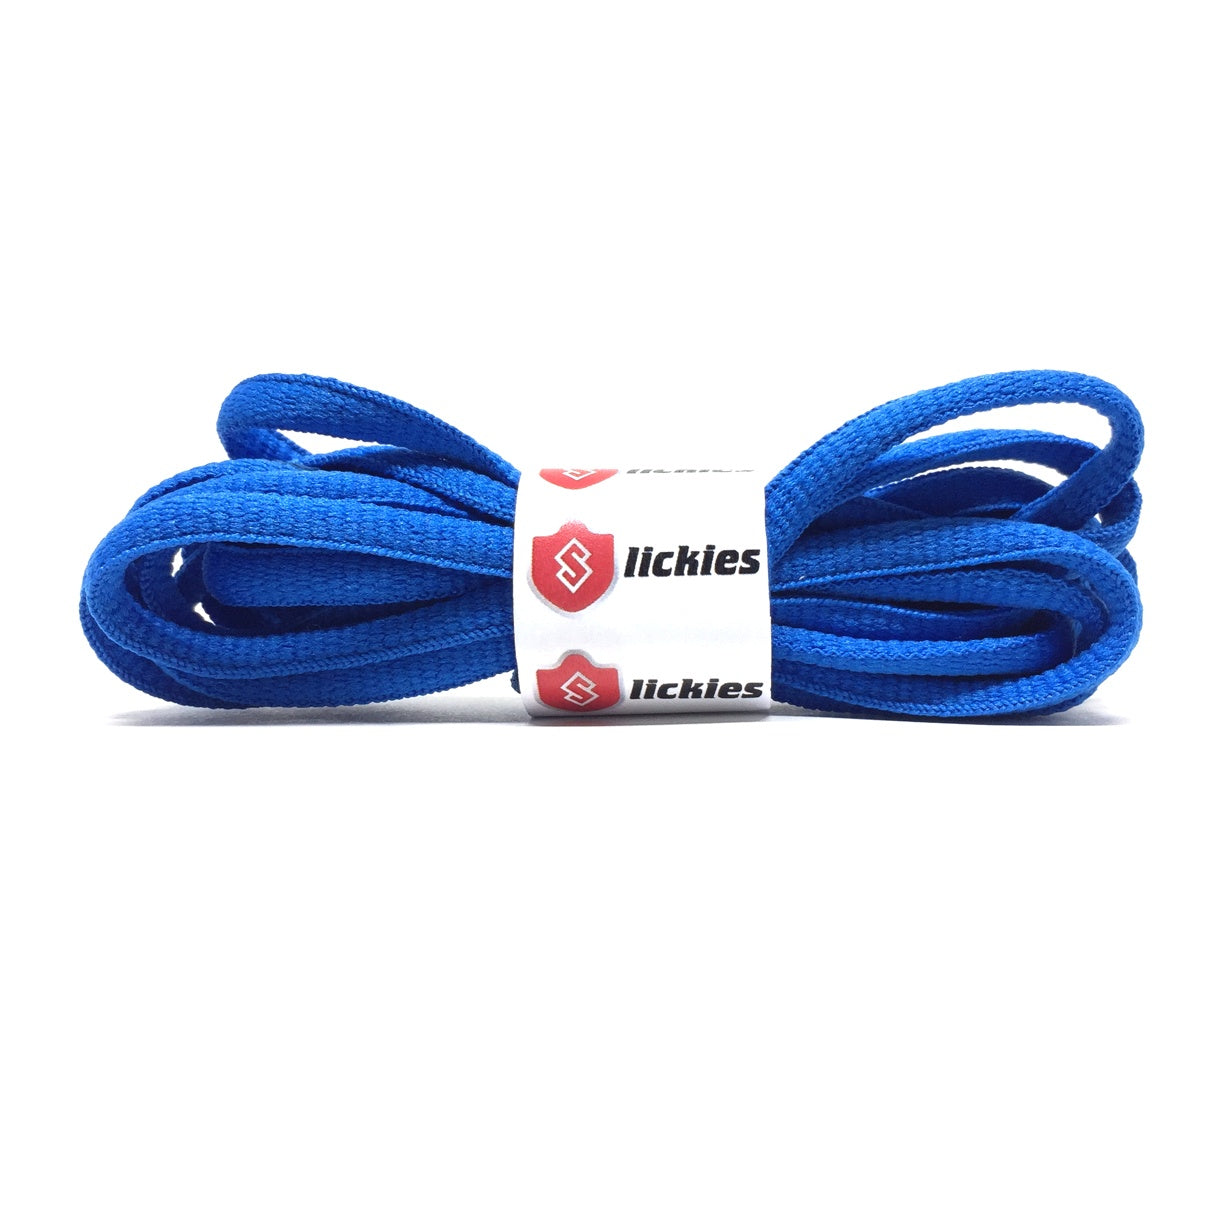 Semi-Circle - BASICS Oval Laces - Blue